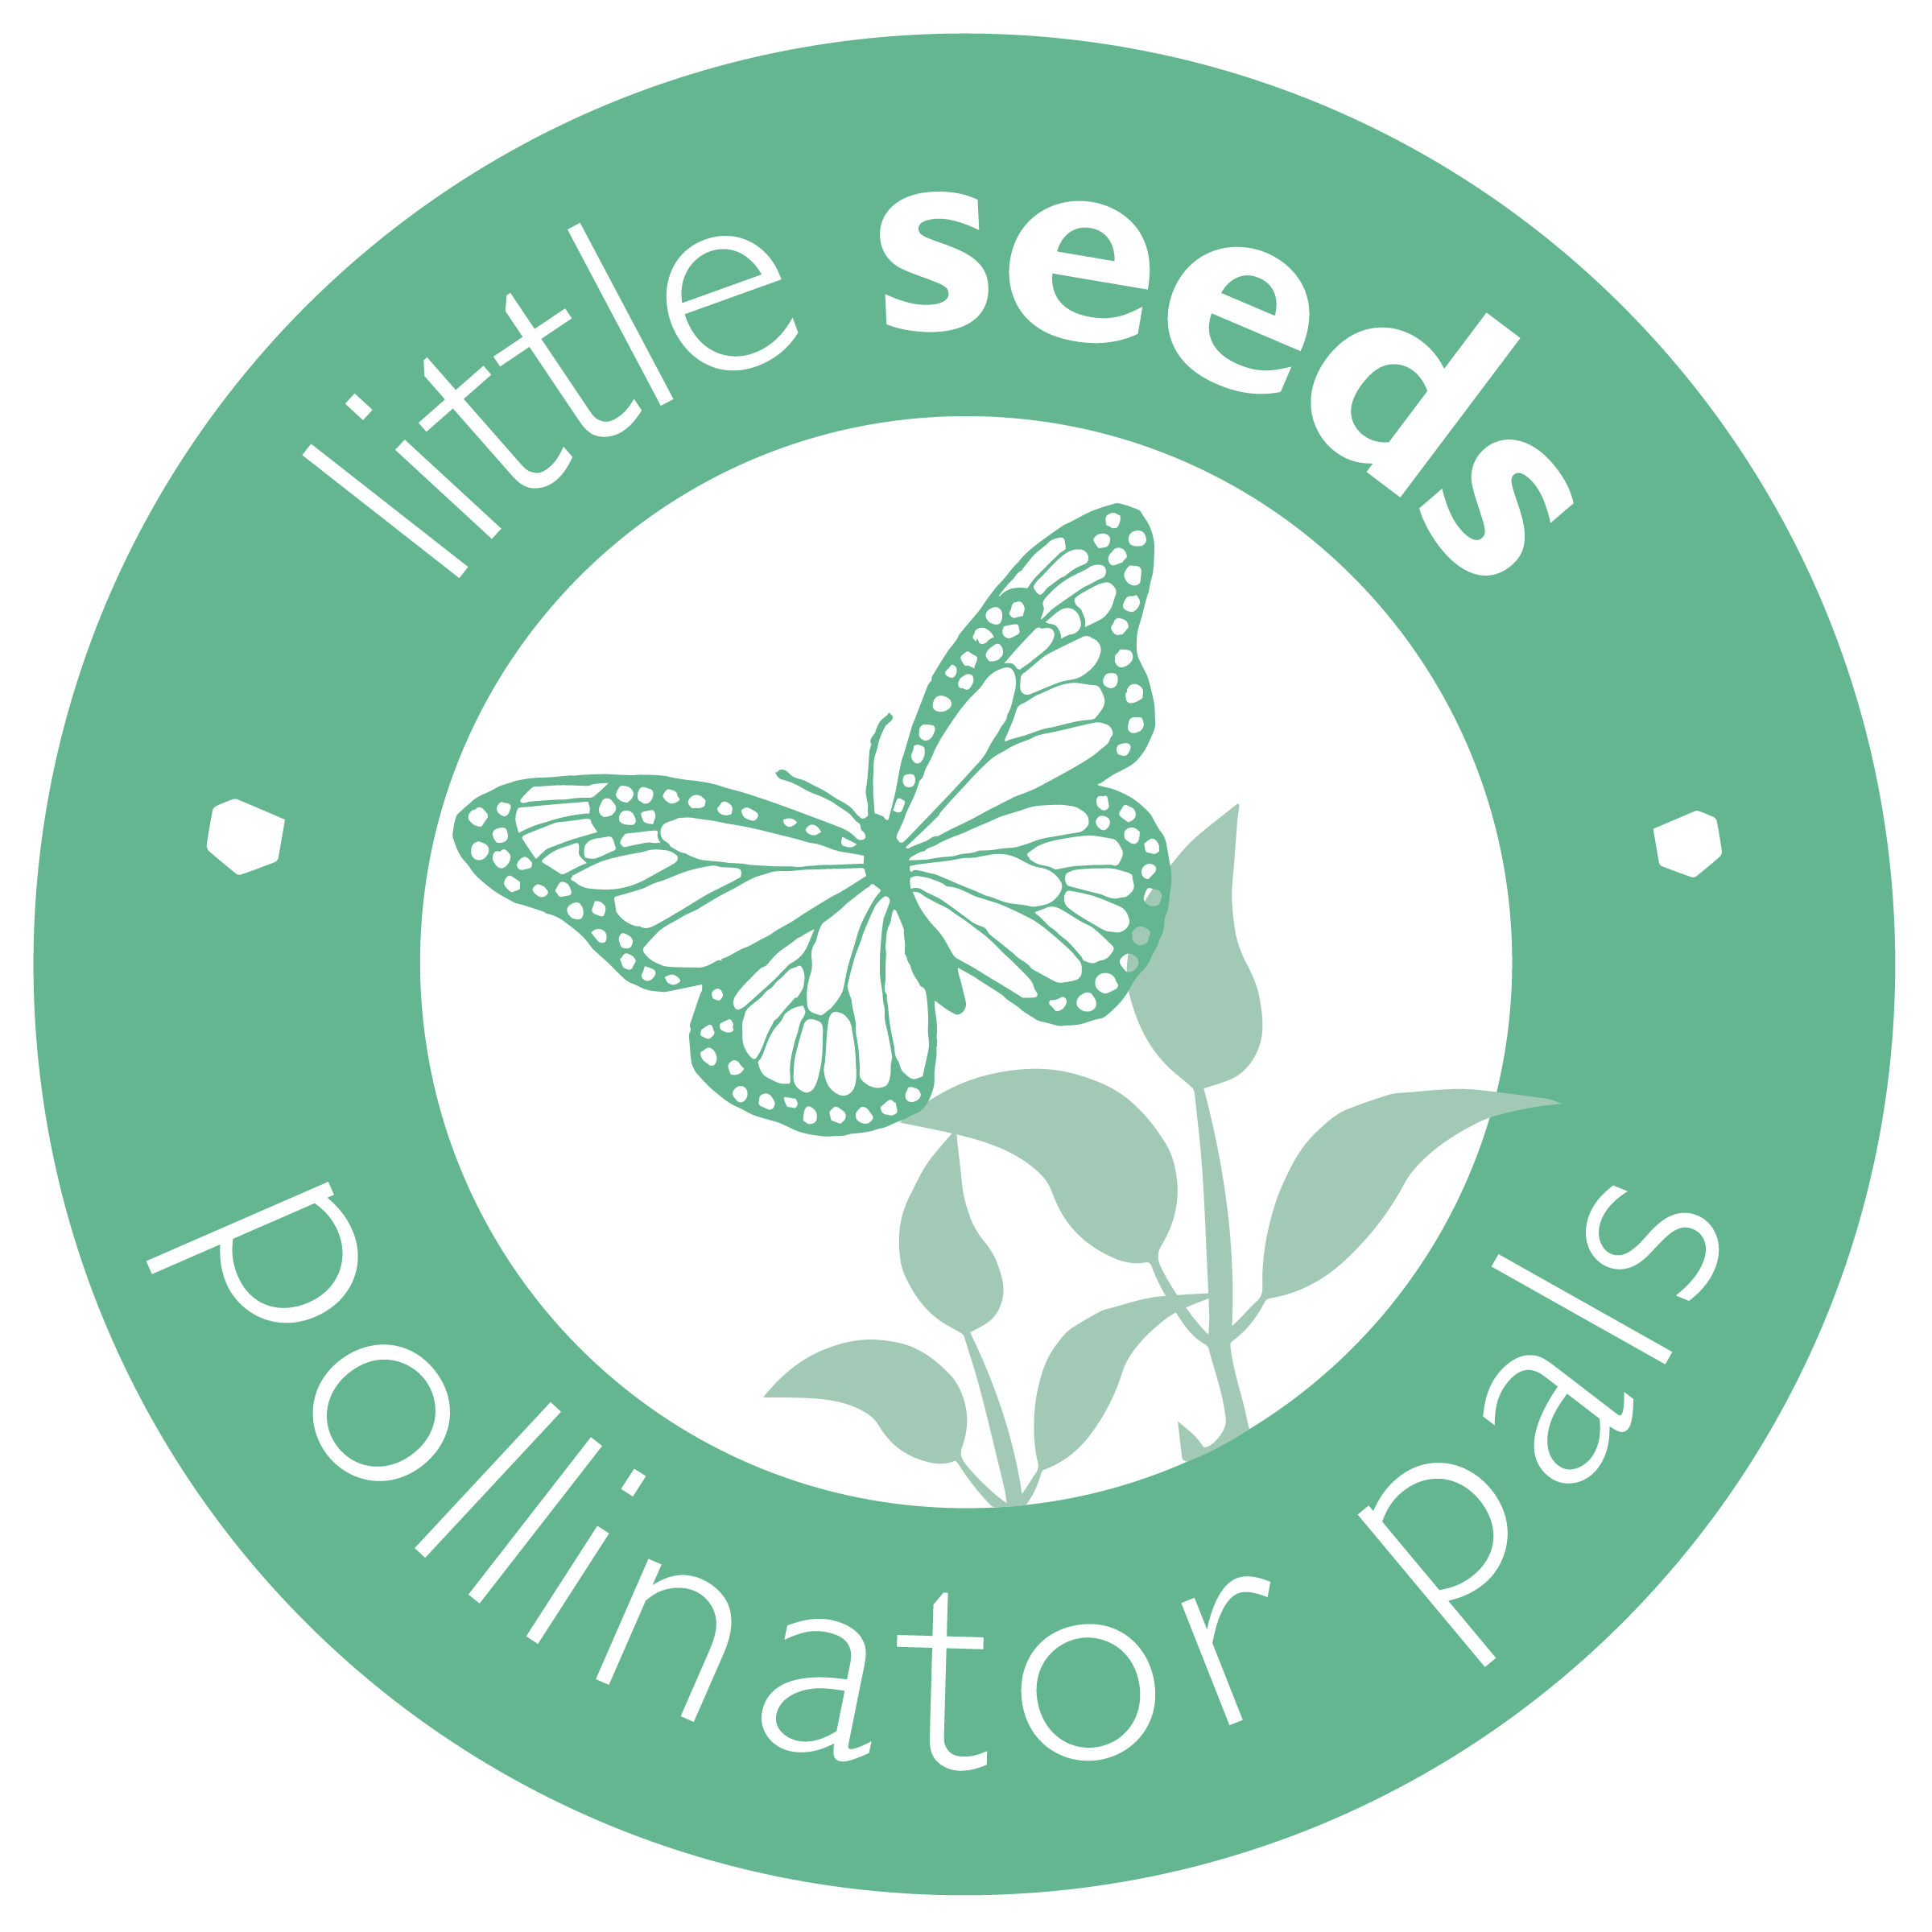 """Little Seeds Pollinator Pals logo: a mint green circle with the words """"little seeds pollinator pals"""" written around it, with a sketch of a monarch and leaves in the center."""